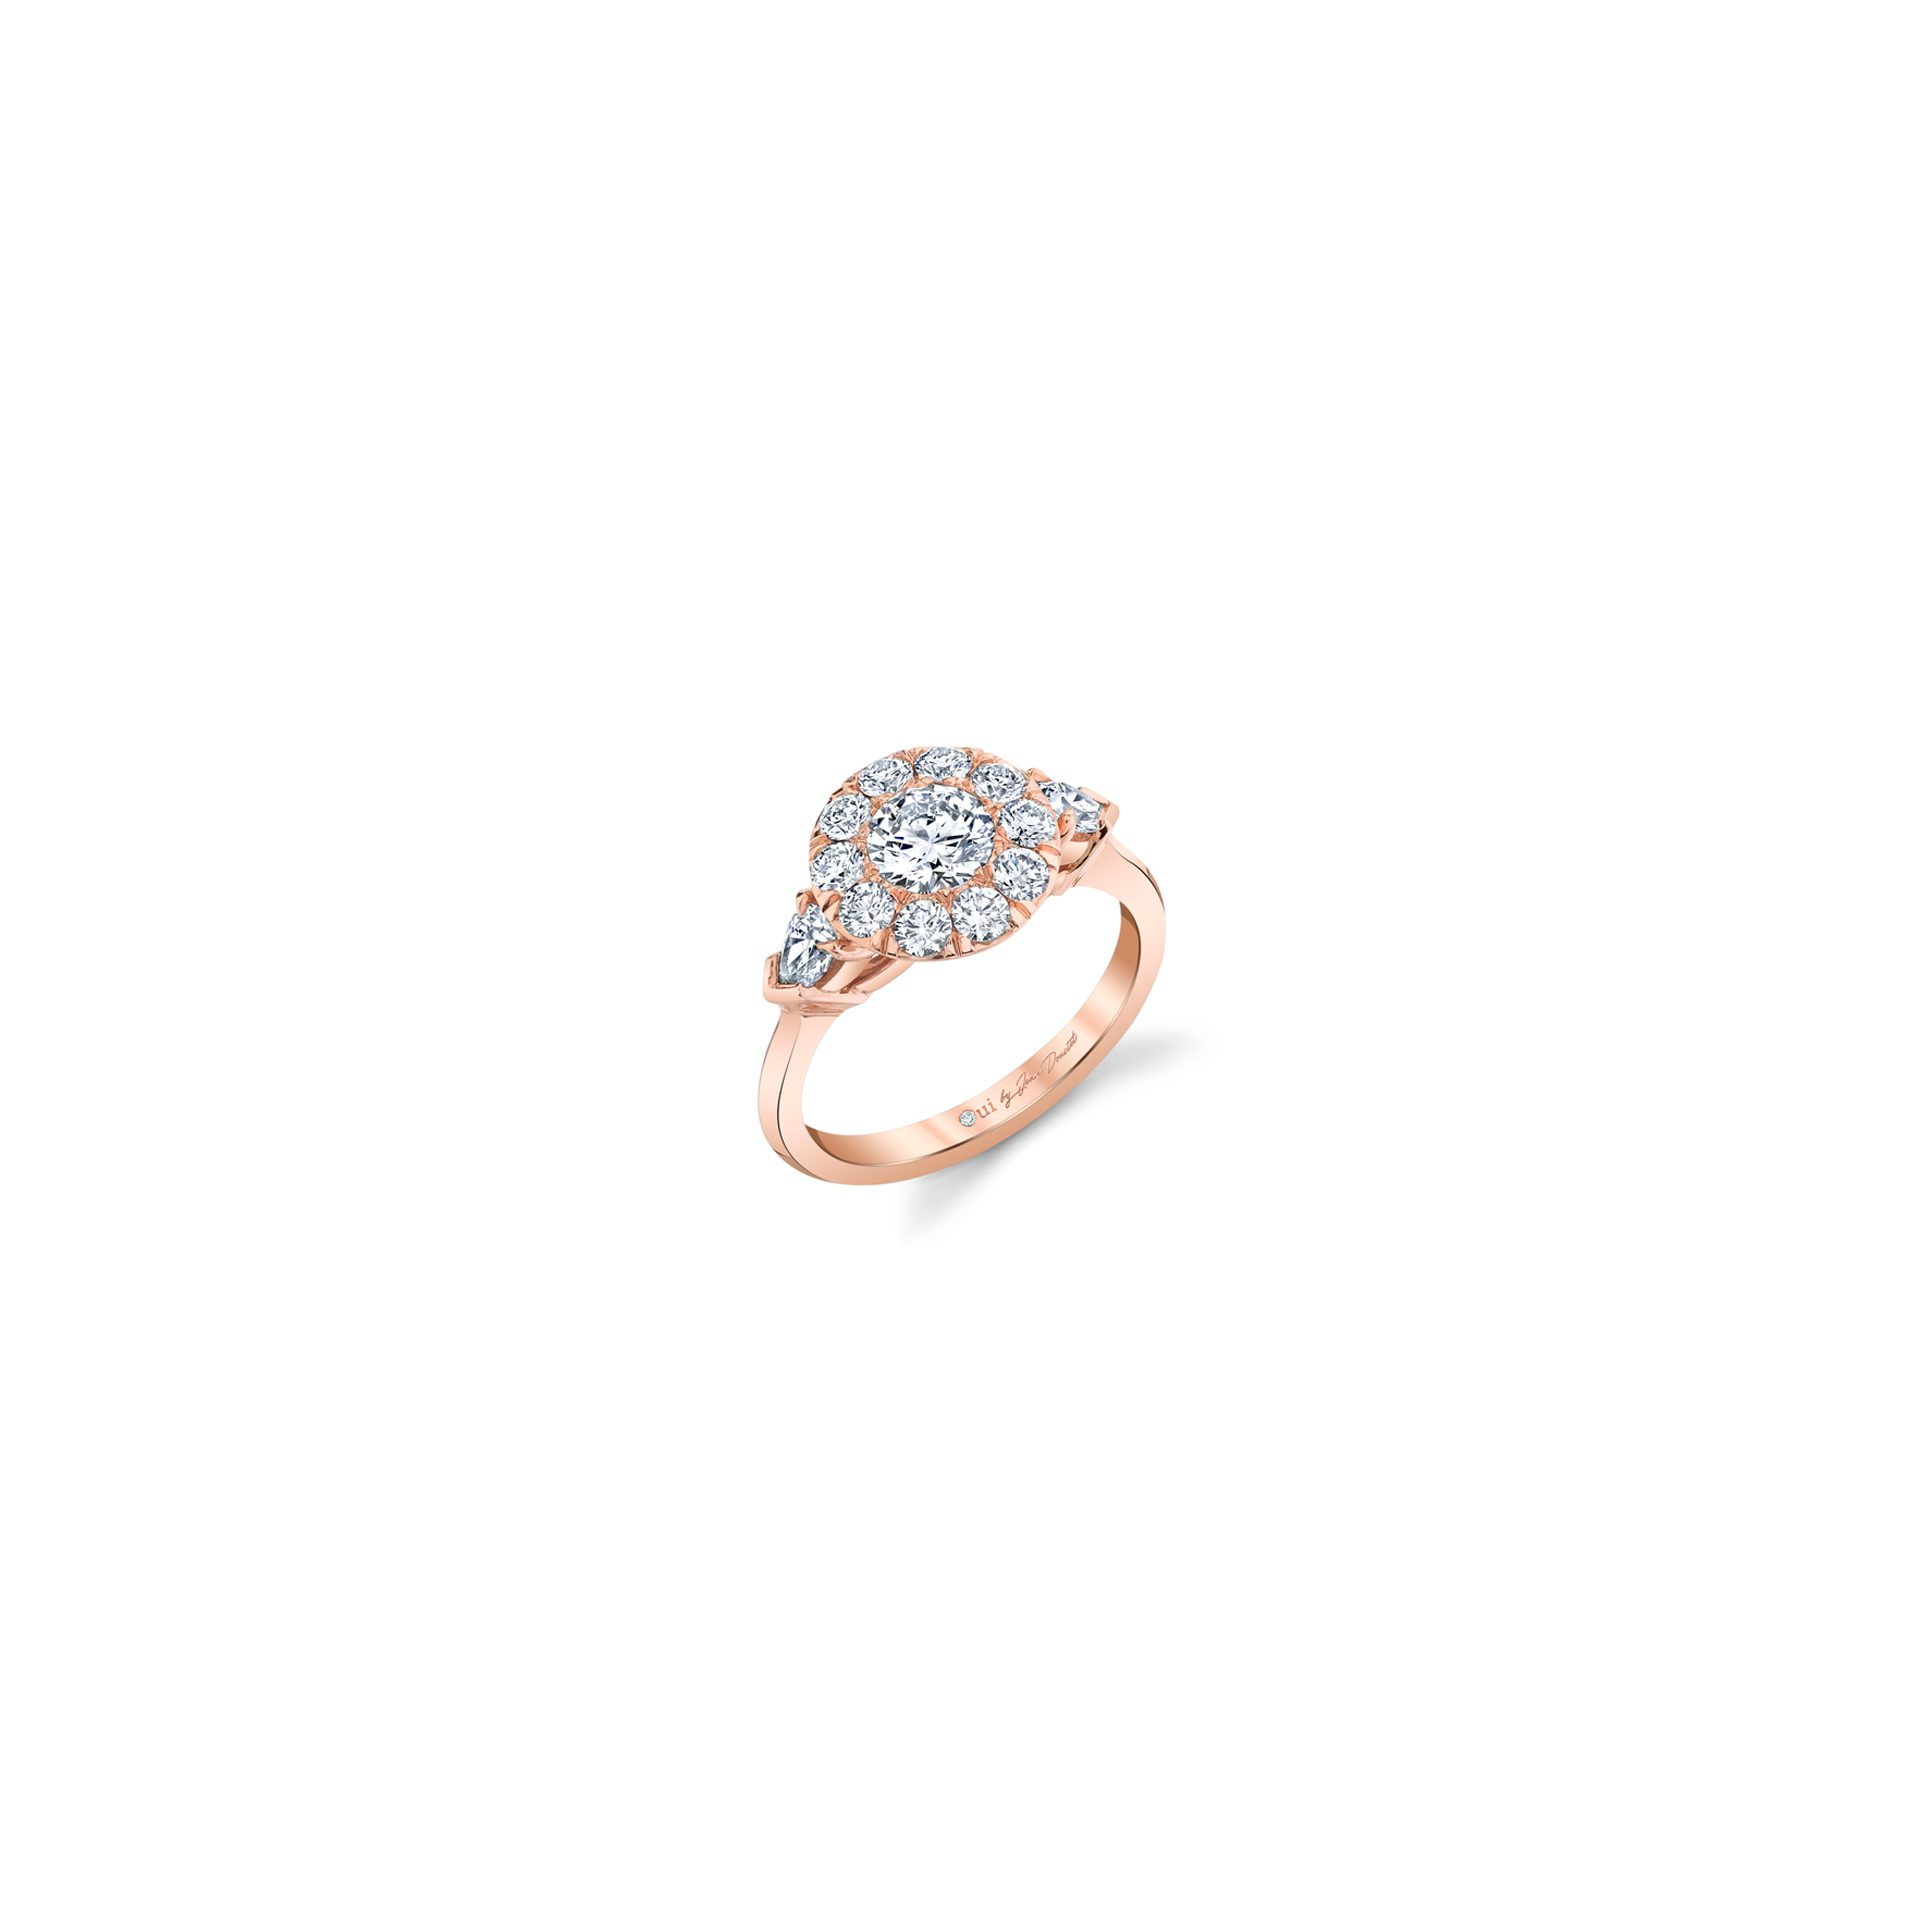 Clementine Round Brilliant Seamless Solitaire™ Three Stone Engagement Ring with pear-shaped diamond side stones in 18k Rose Gold Front View by Oui by Jean Dousset